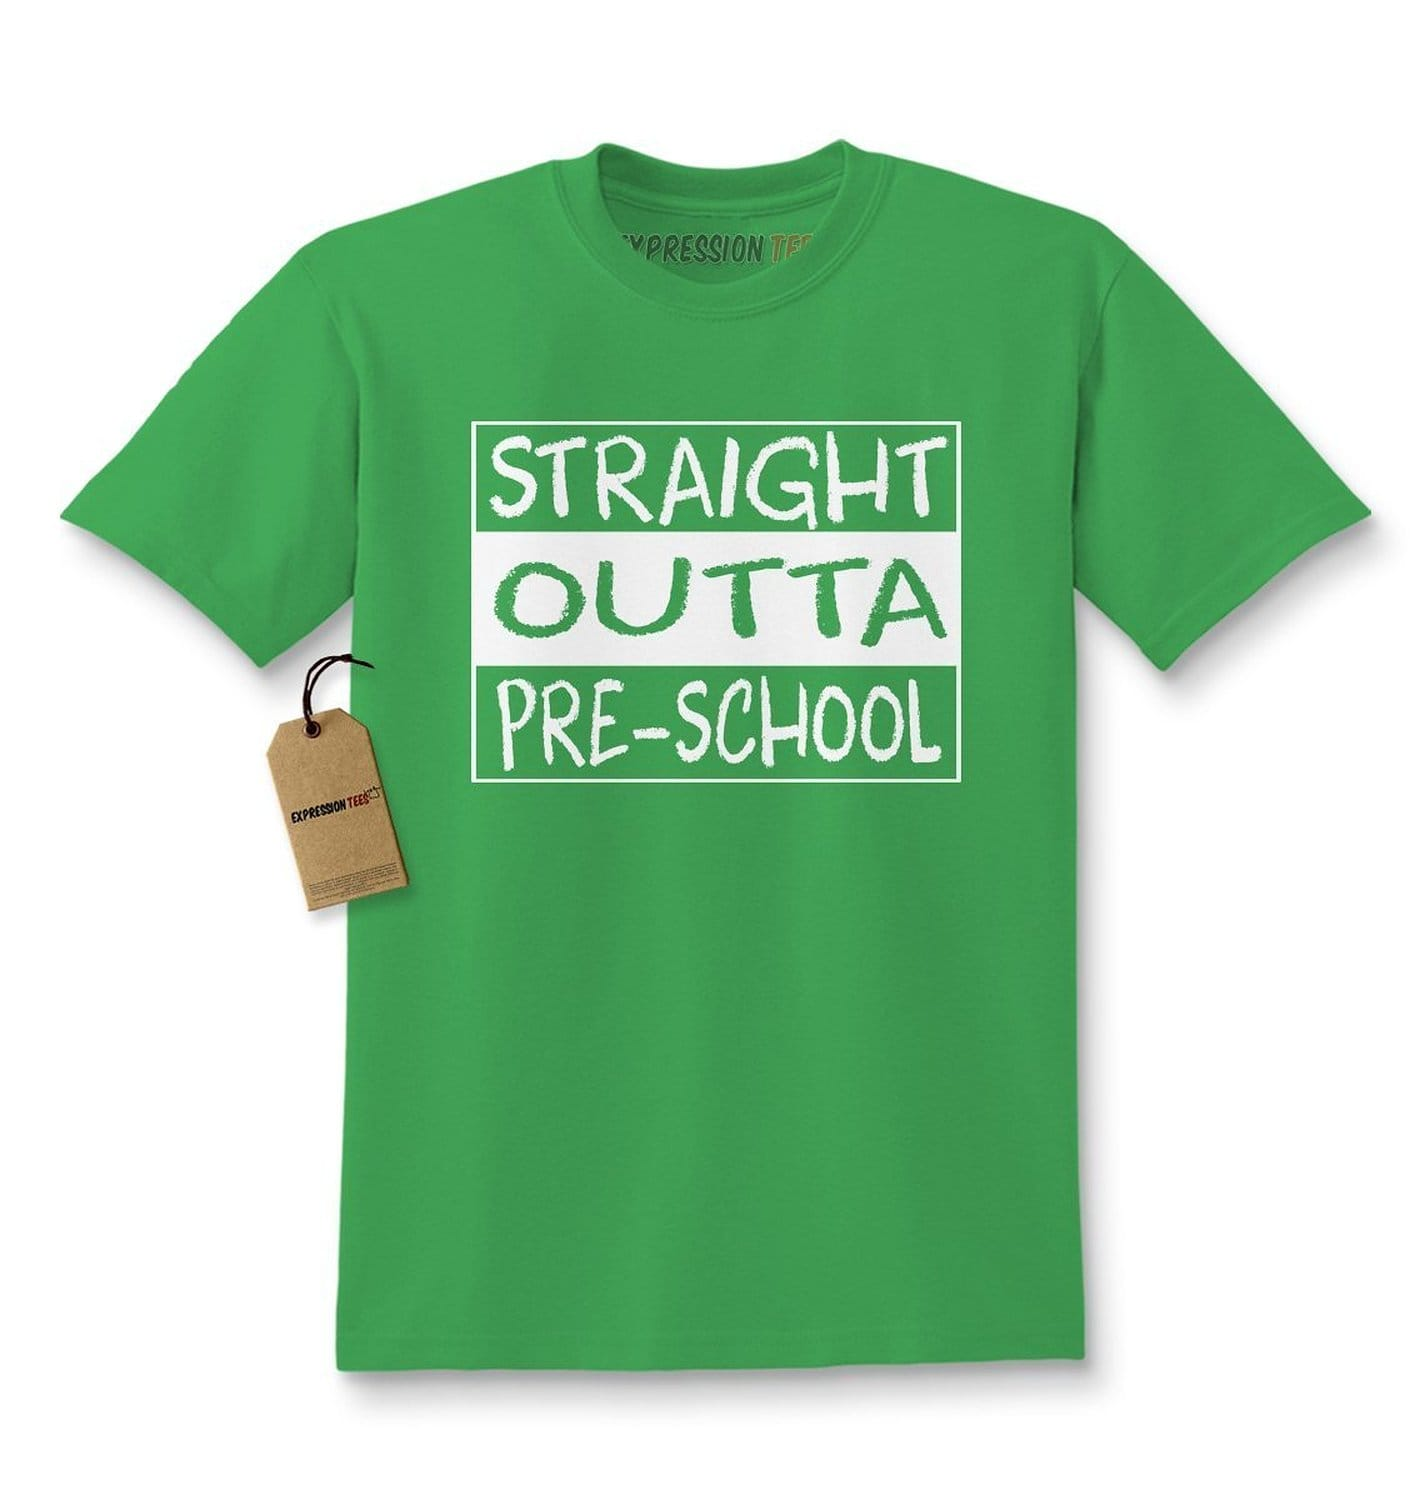 Expression Tees Straight Outta Pre-School Kids